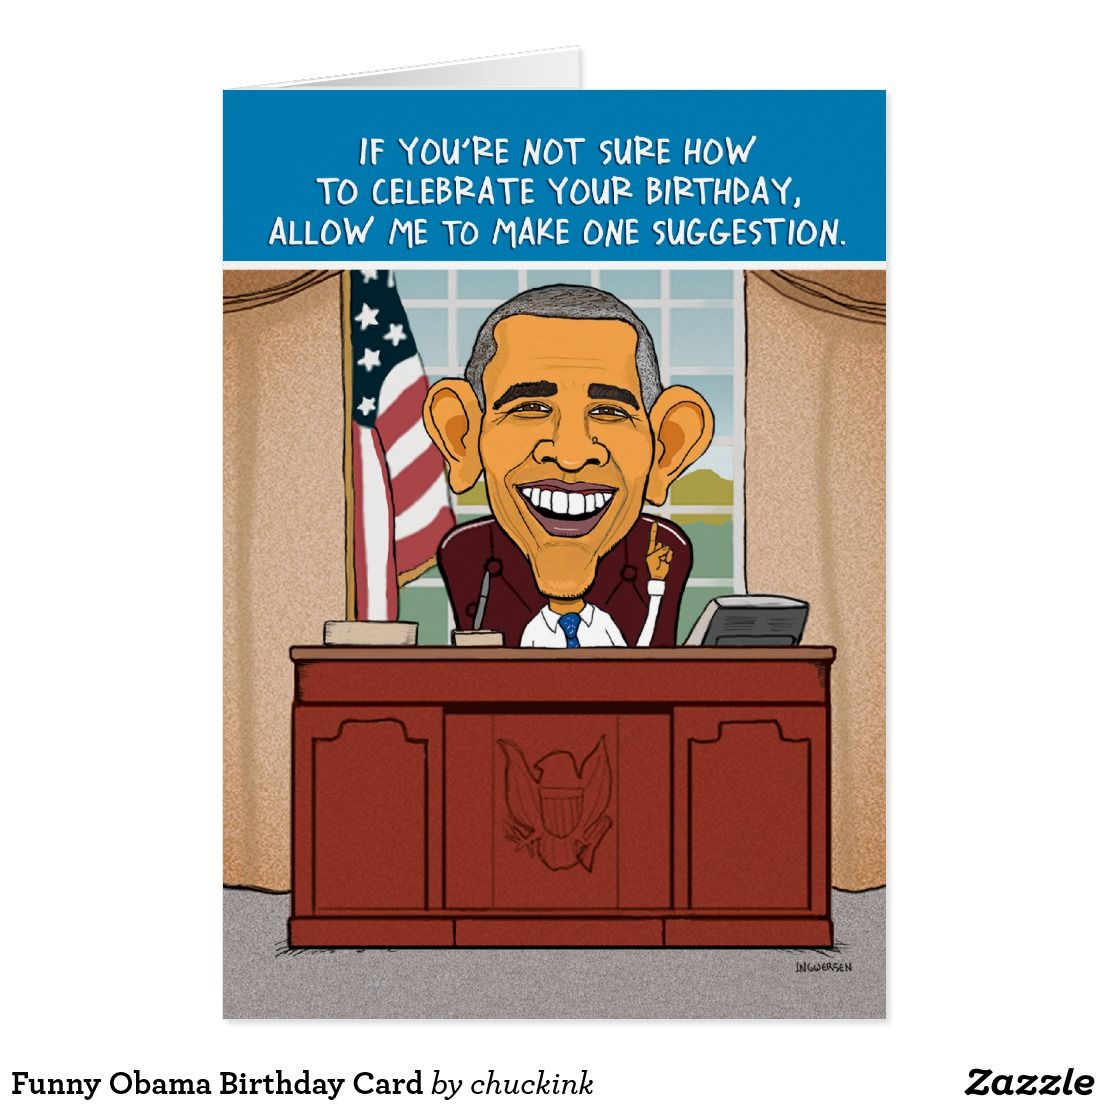 Funny obama birthday card funny greeting cards pinterest obama funny obama birthday card kristyandbryce Choice Image